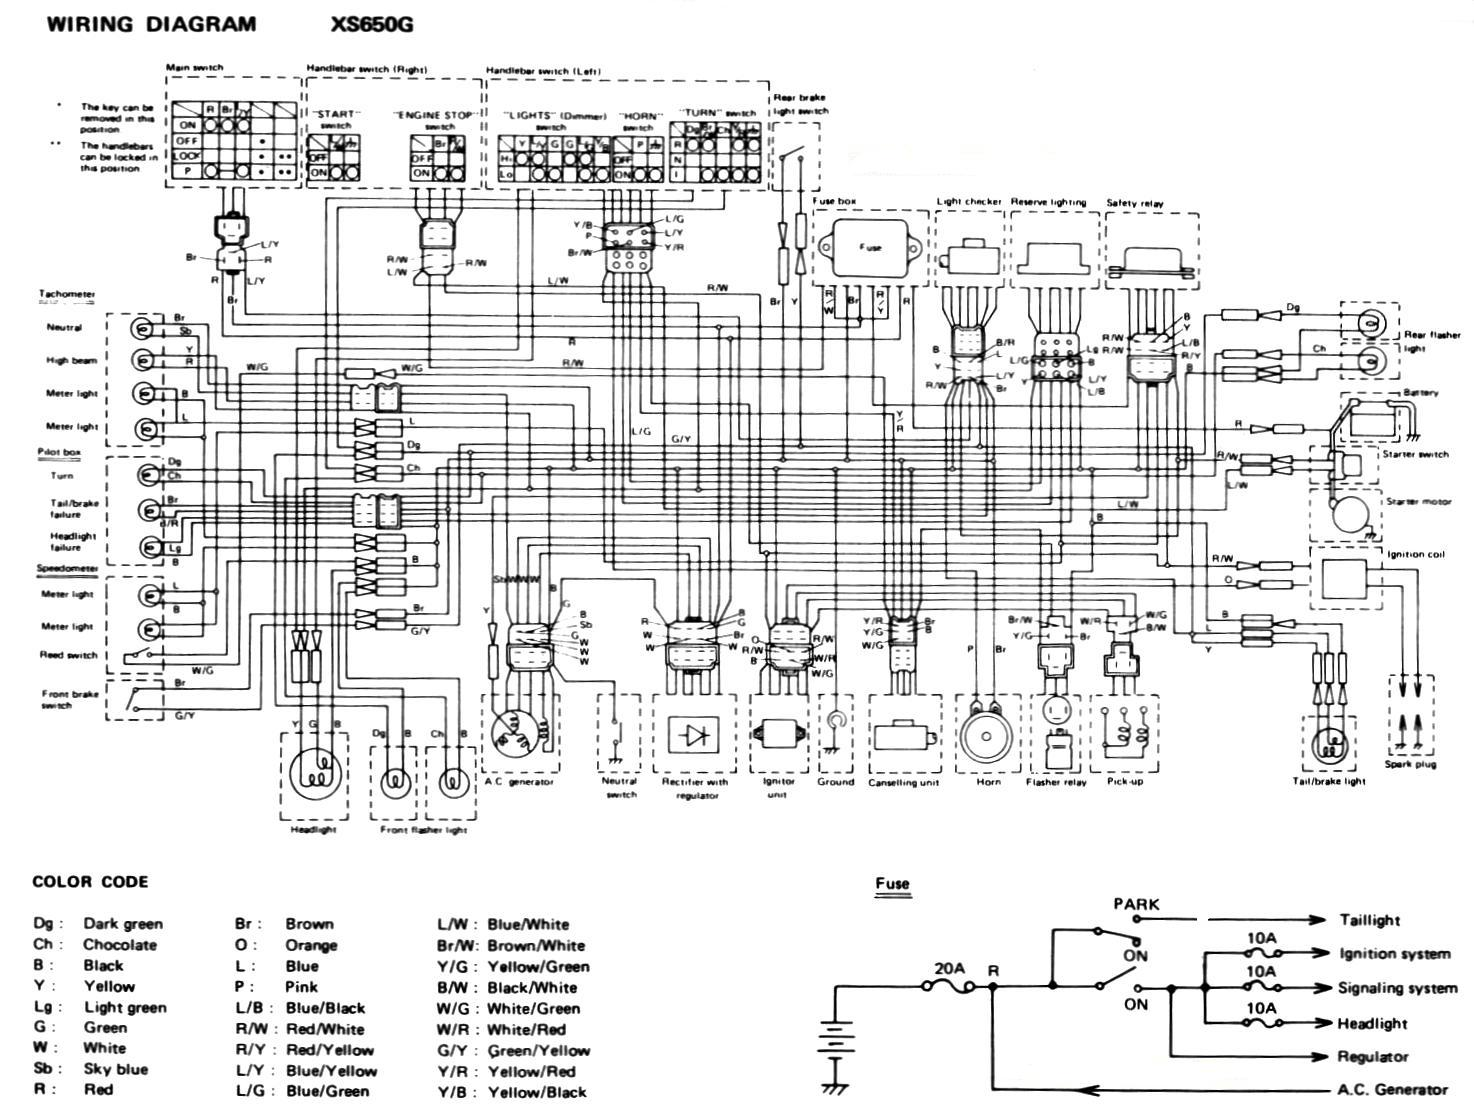 Wiring Diagram For 1983 Nighthawk 650 Anything Diagrams Honda Harness Rh Oregonmotorcycleparts Com Bobber